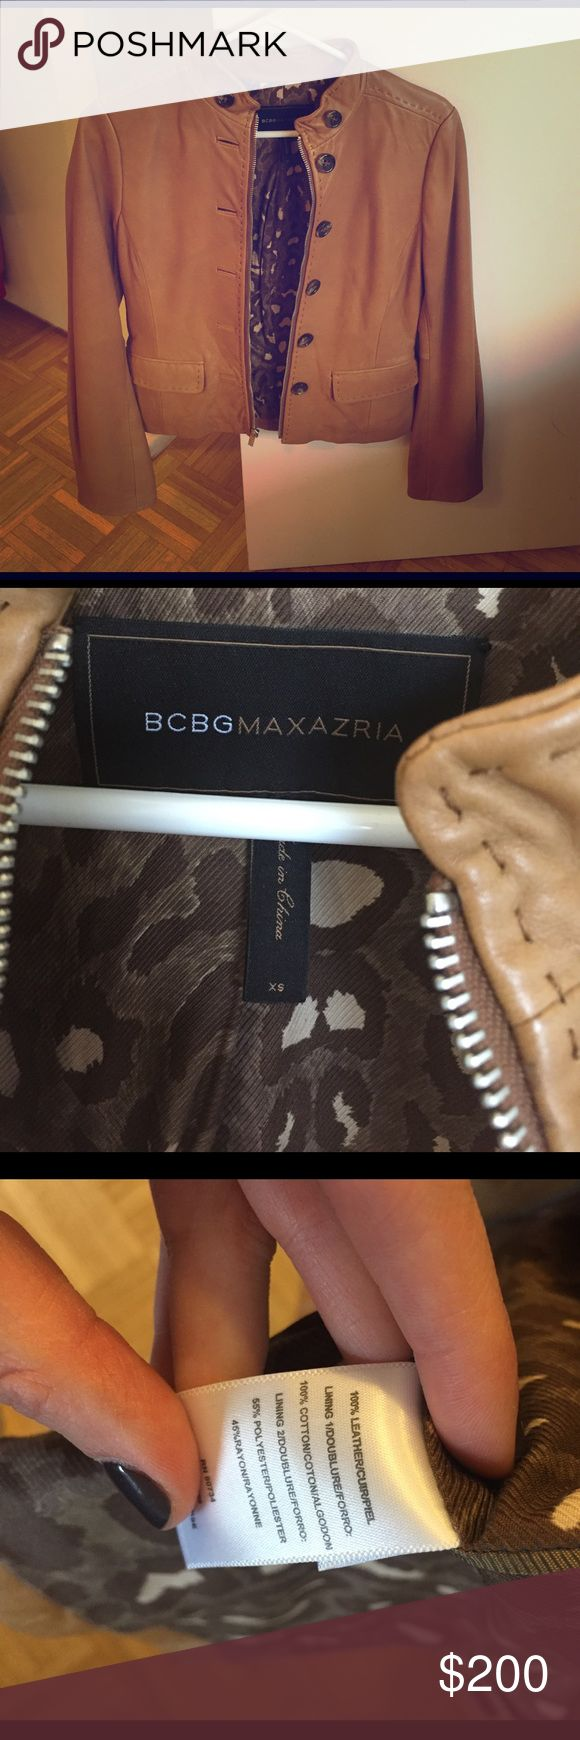 BCBG Max Azria camel leather jacket This gorgeous leather jacket is in pristine condition. Military style buttons and a zipper for a versatile look. Perfect for spring, a timeless piece you can wear for years to come. BCBGMaxAzria Jackets & Coats Utility Jackets